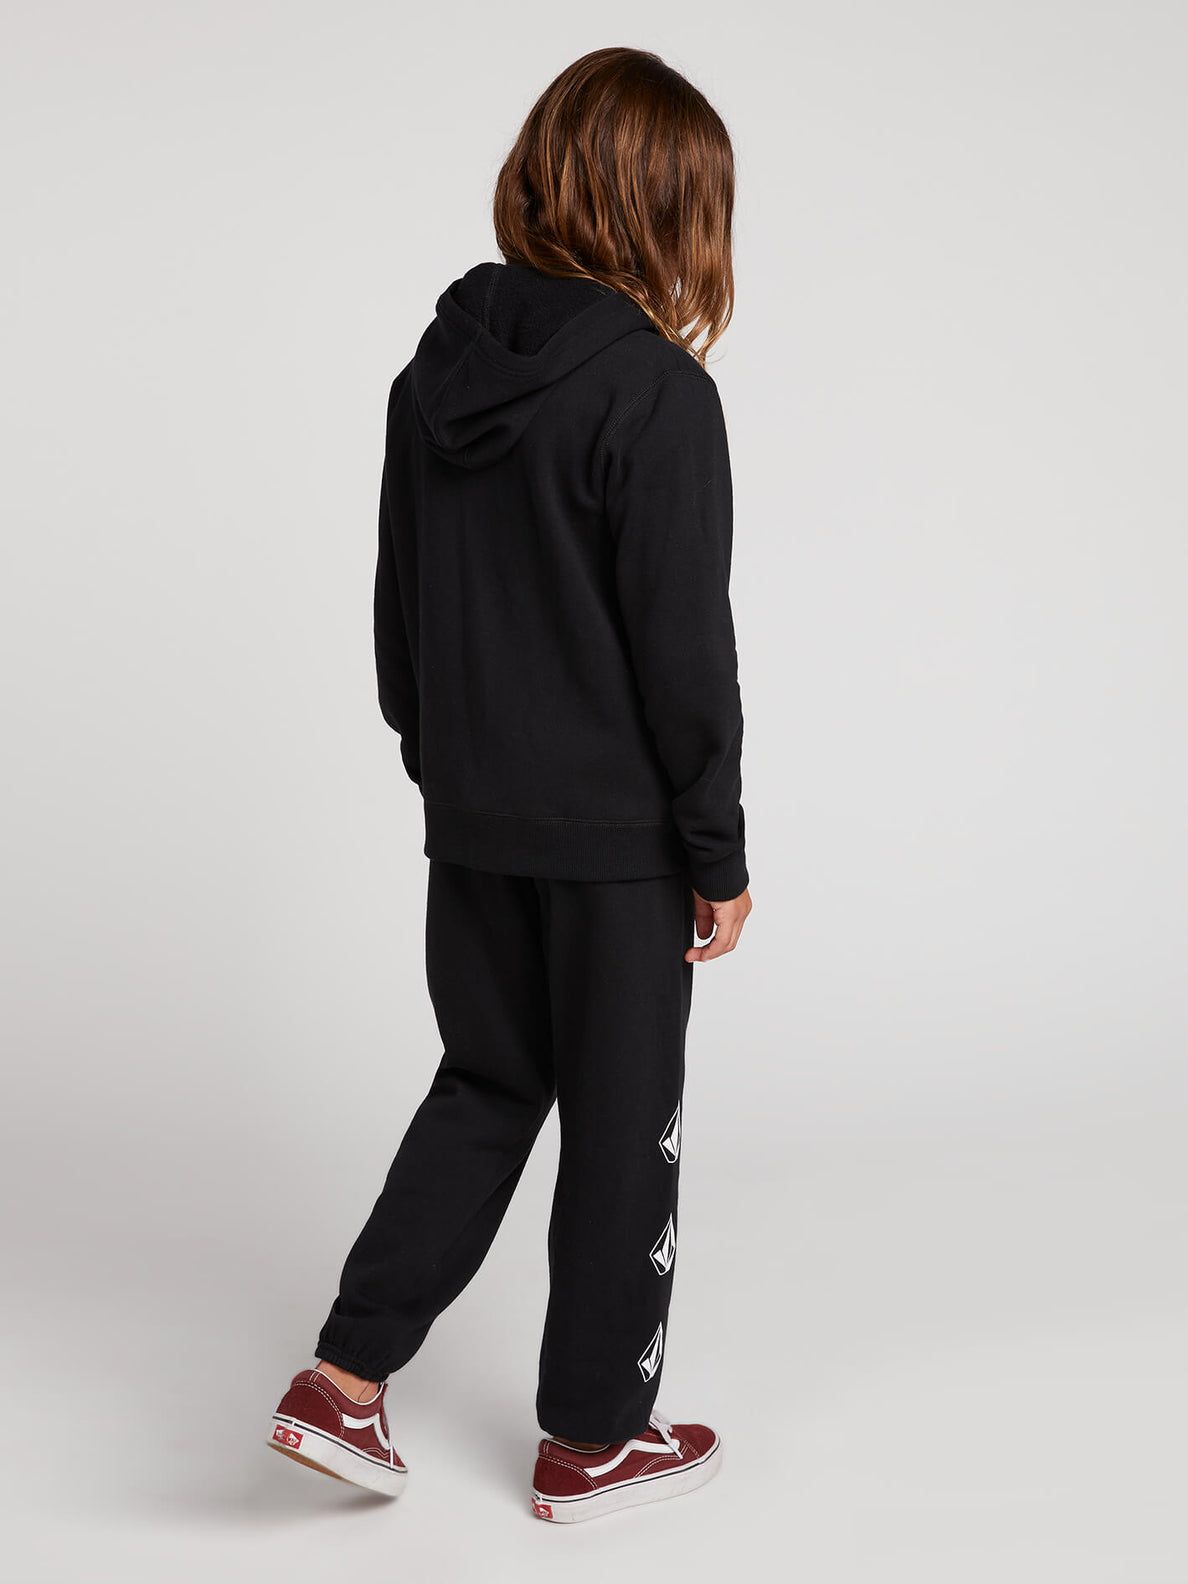 Big Girls Zippety Zip Hoodie In Black Combo, Back View